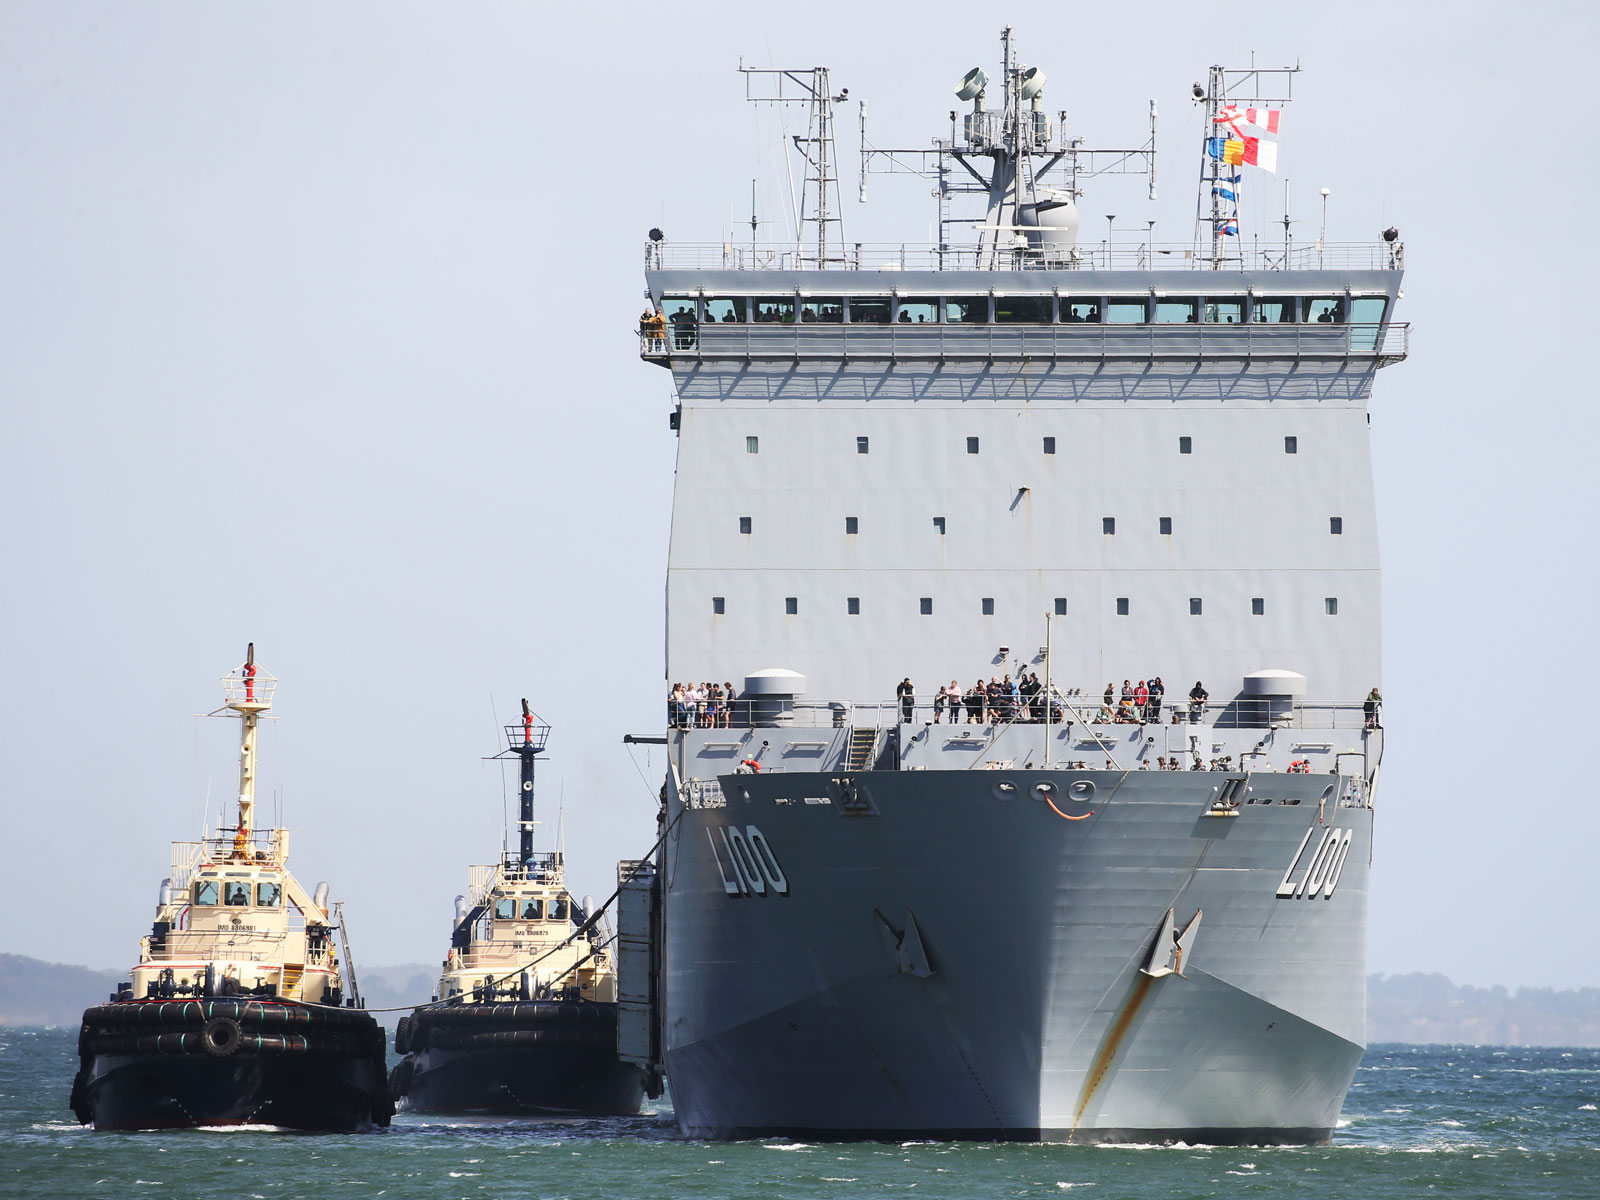 HMAS Choules arrives carrying evacuees from Mallacoota at the port of Hastings, Australia on January 4, 2020.